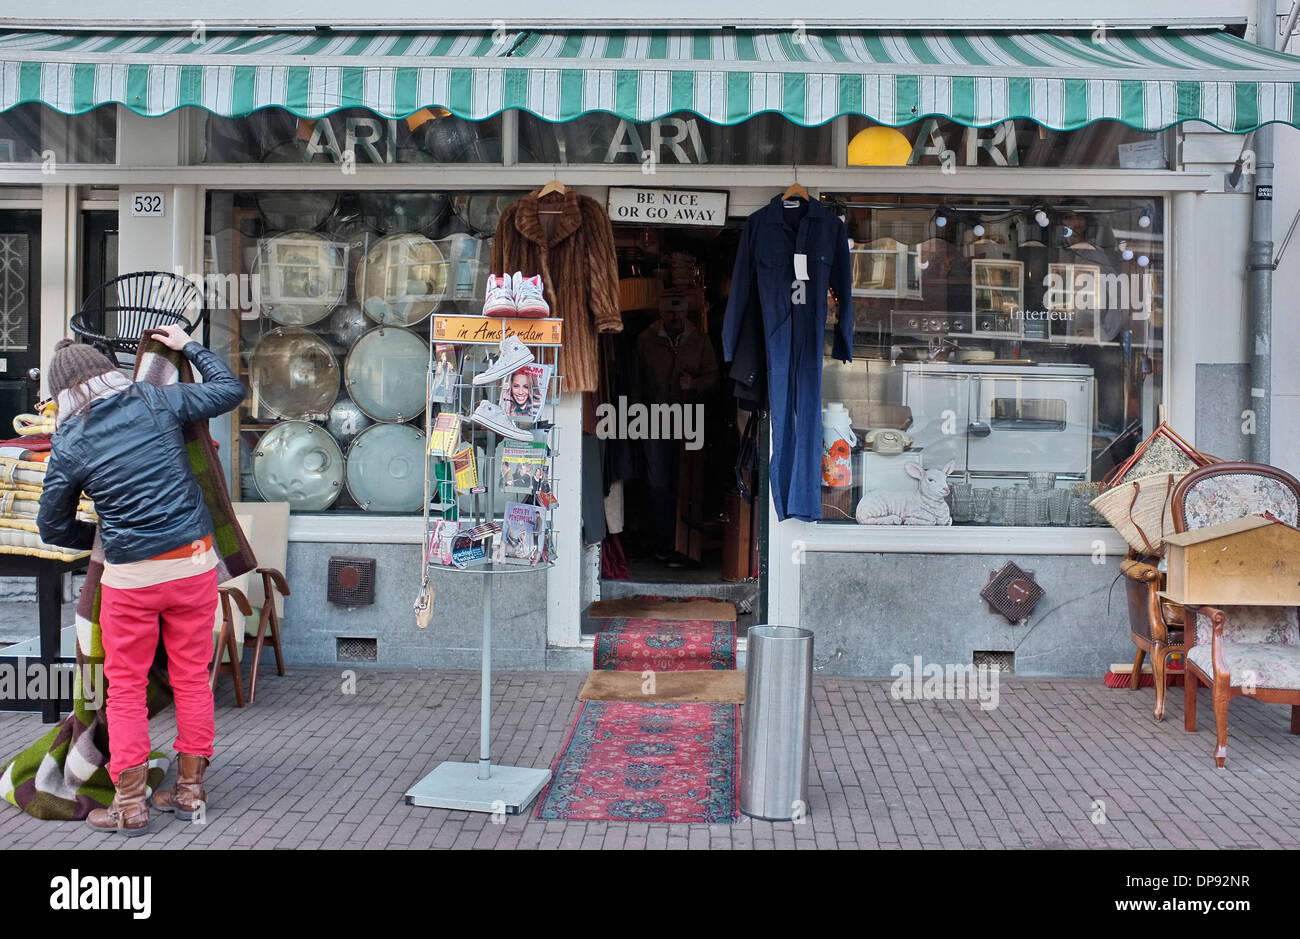 Overtoom Meubels Amsterdam : Ari bric a brac store on overtoom amsterdam stock photo: 65353283